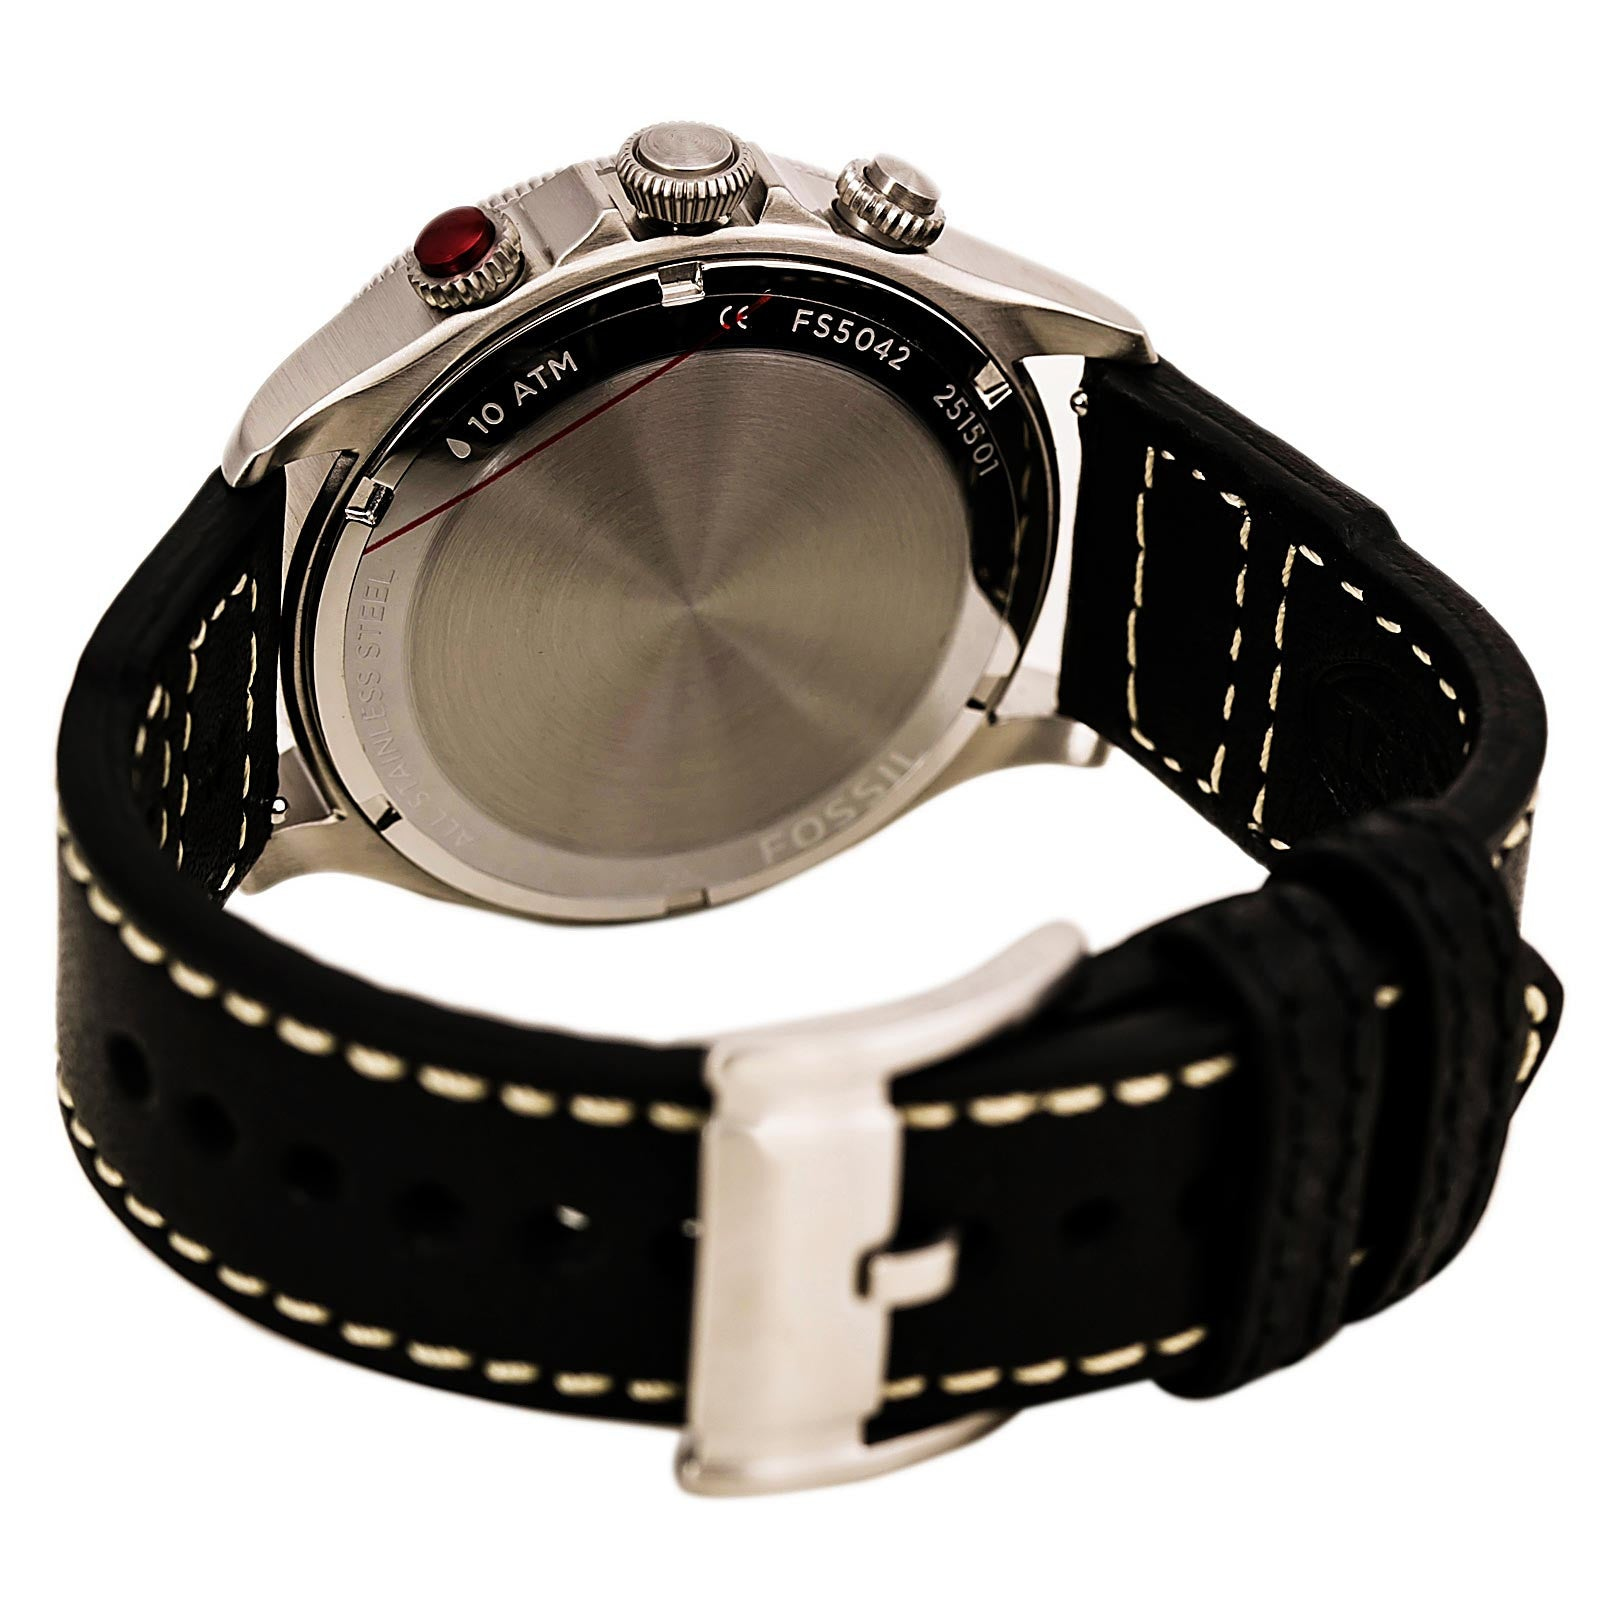 Fossil FS5042 Men's Recruiter Black Dial Black Leather Strap Multifunction Alarm GMT Watch